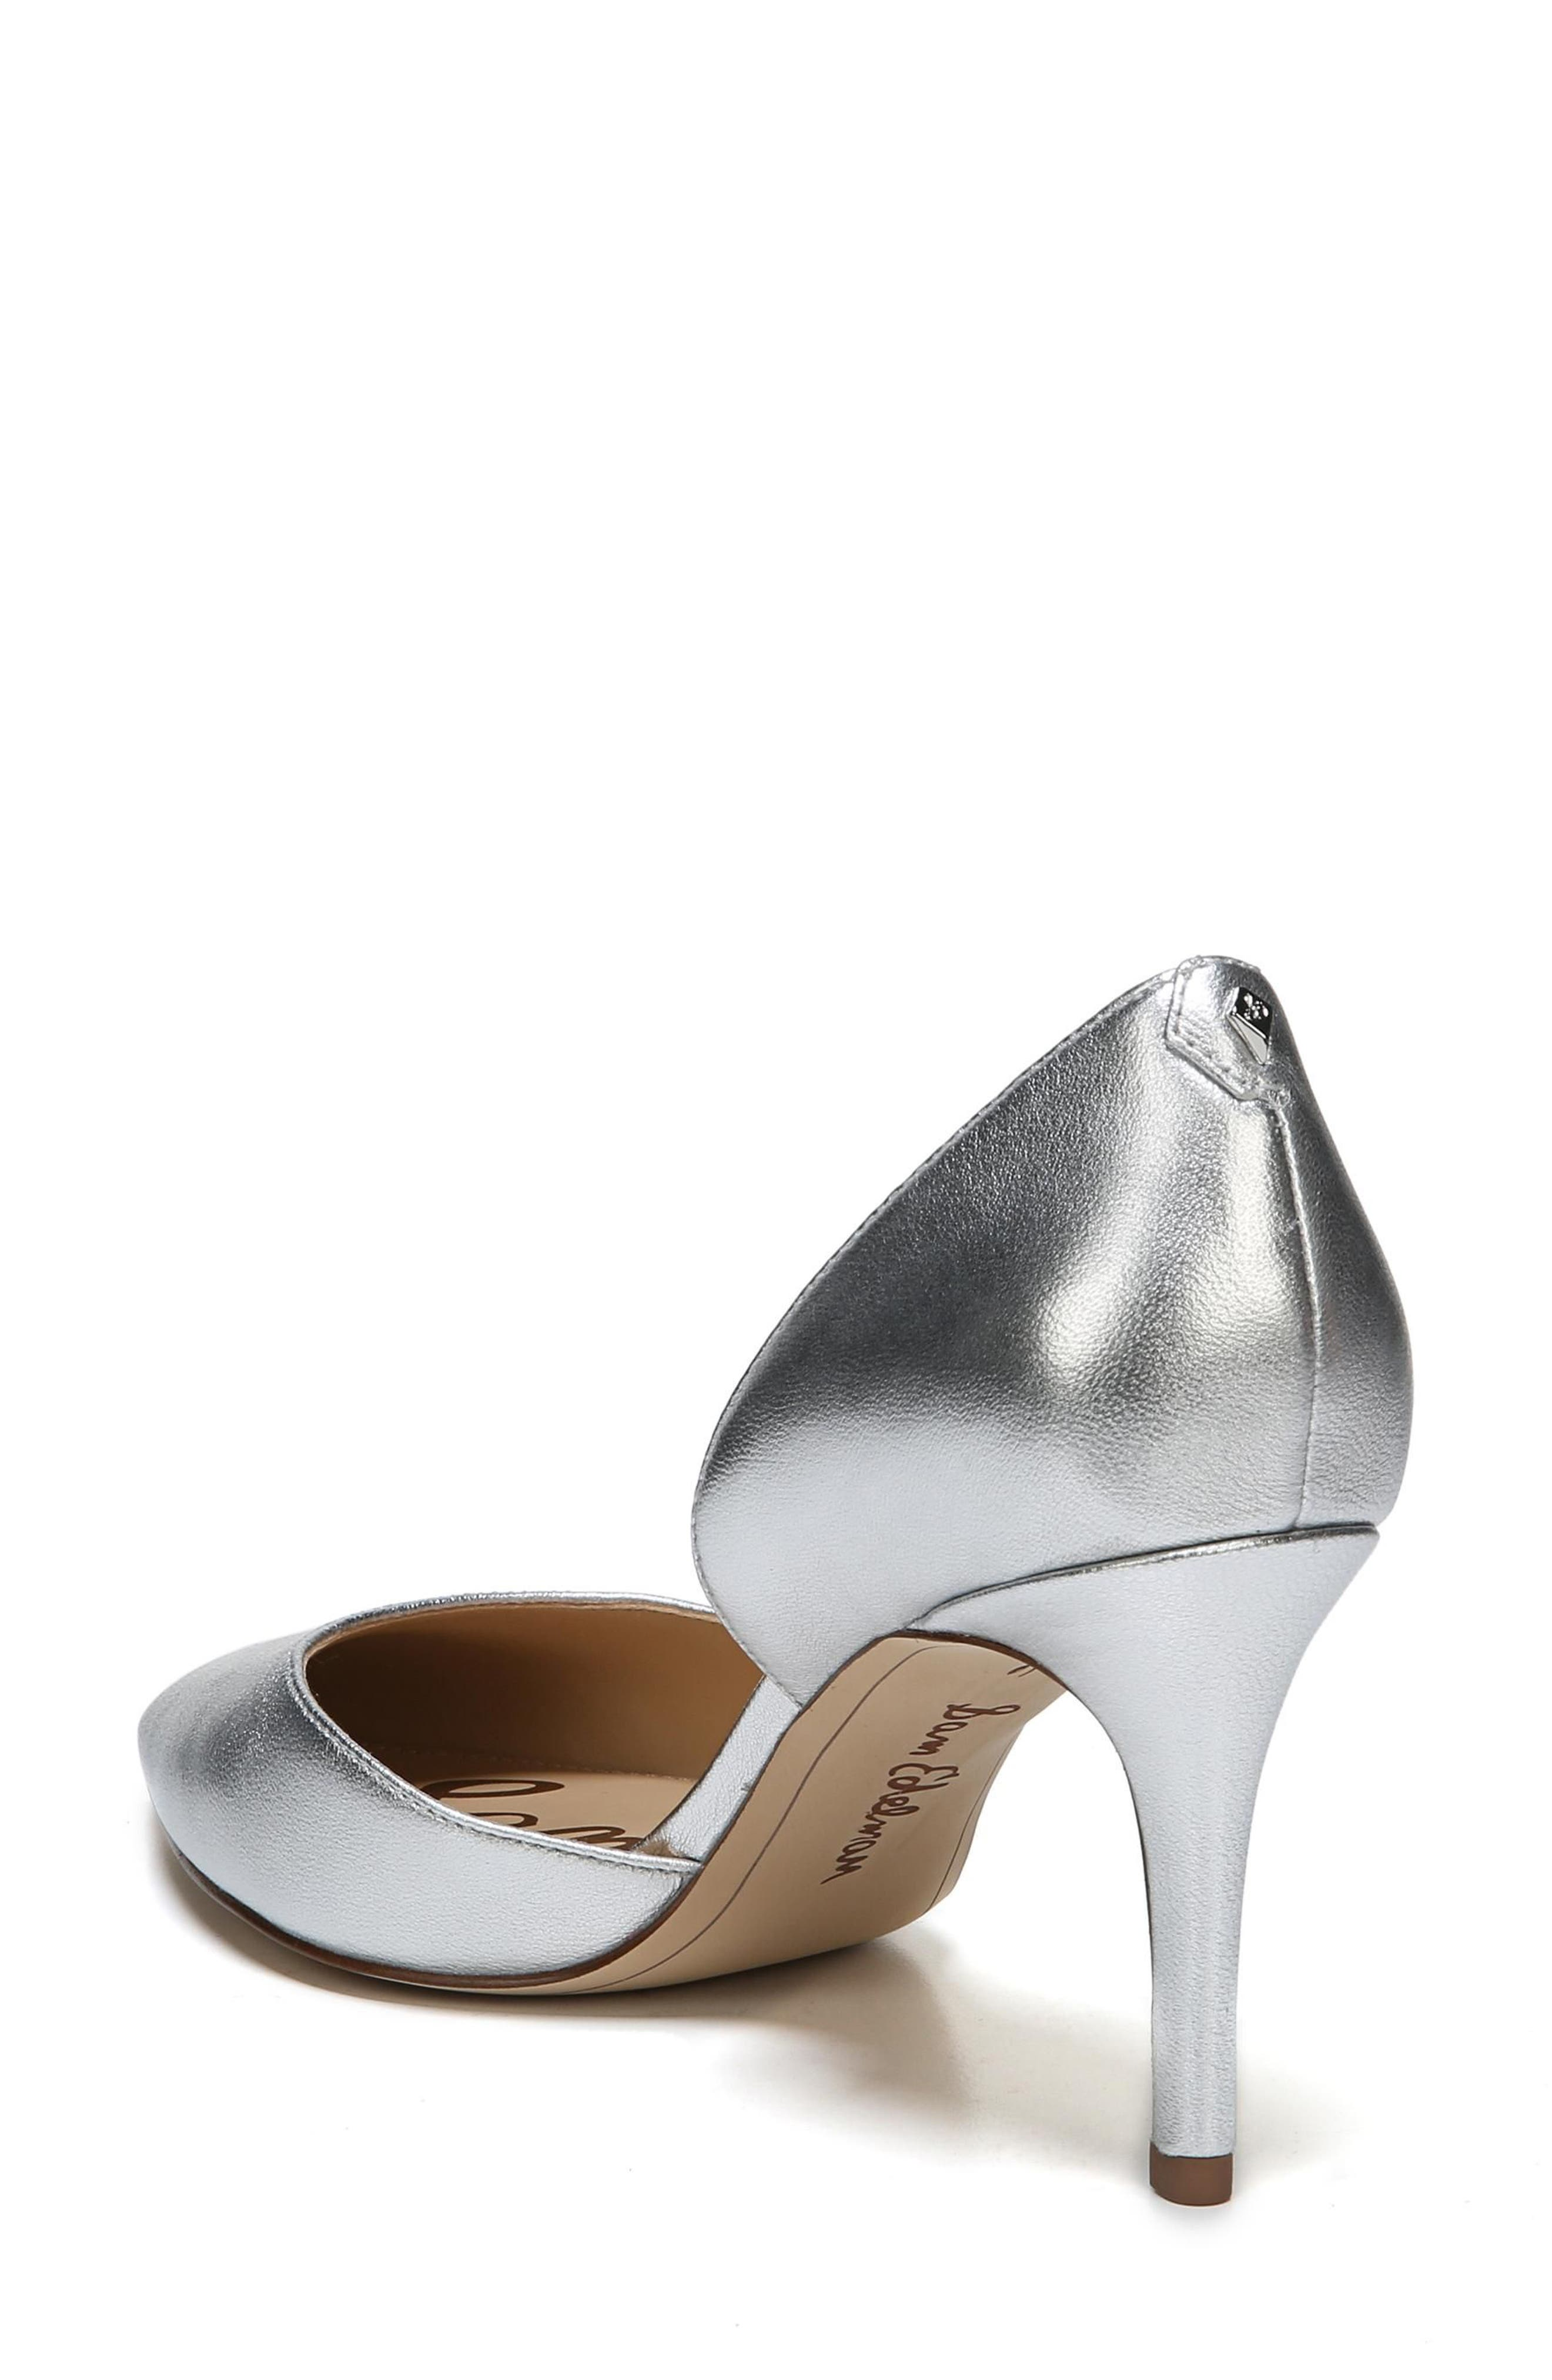 'Telsa' d'Orsay Pointy Toe Pump,                             Alternate thumbnail 2, color,                             Soft Silver Leather